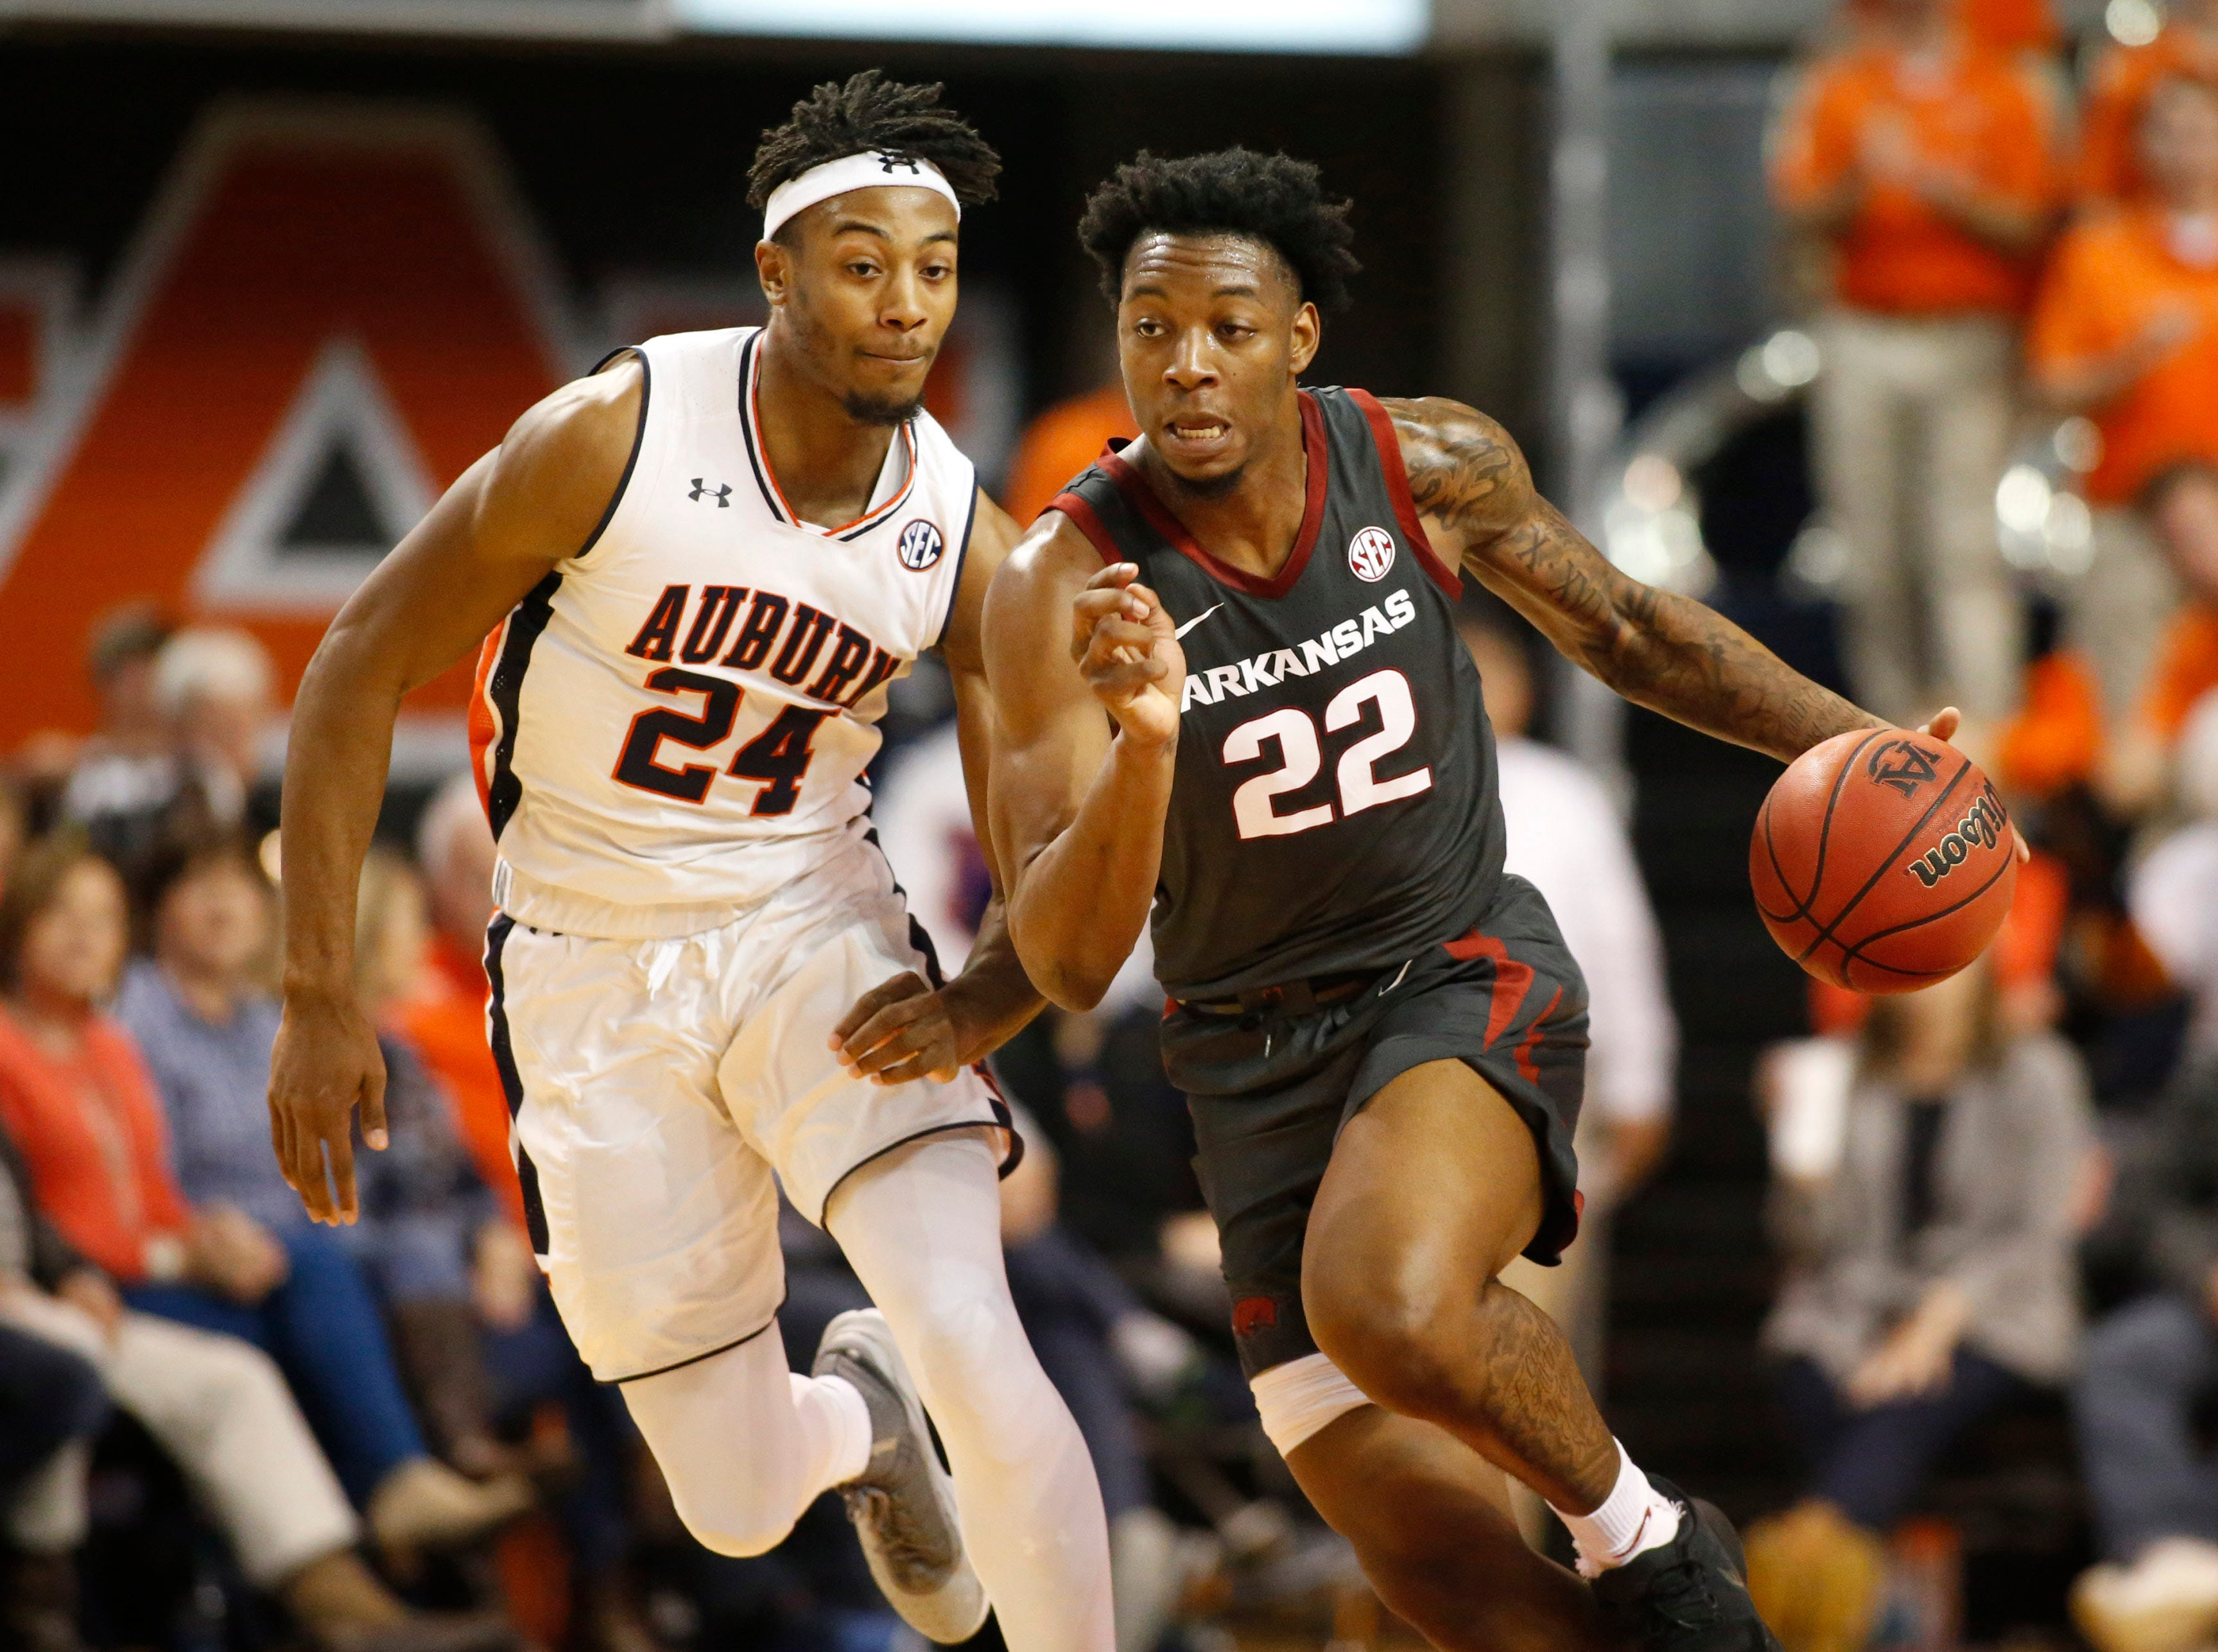 Feb 20, 2019; Auburn, AL, USA; Arkansas Razorbacks forward Gabe Osabuonien (22) moves up the court against Auburn Tigers forward Anfernee McLemore (24) during the first half at Auburn Arena. Mandatory Credit: John Reed-USA TODAY Sports